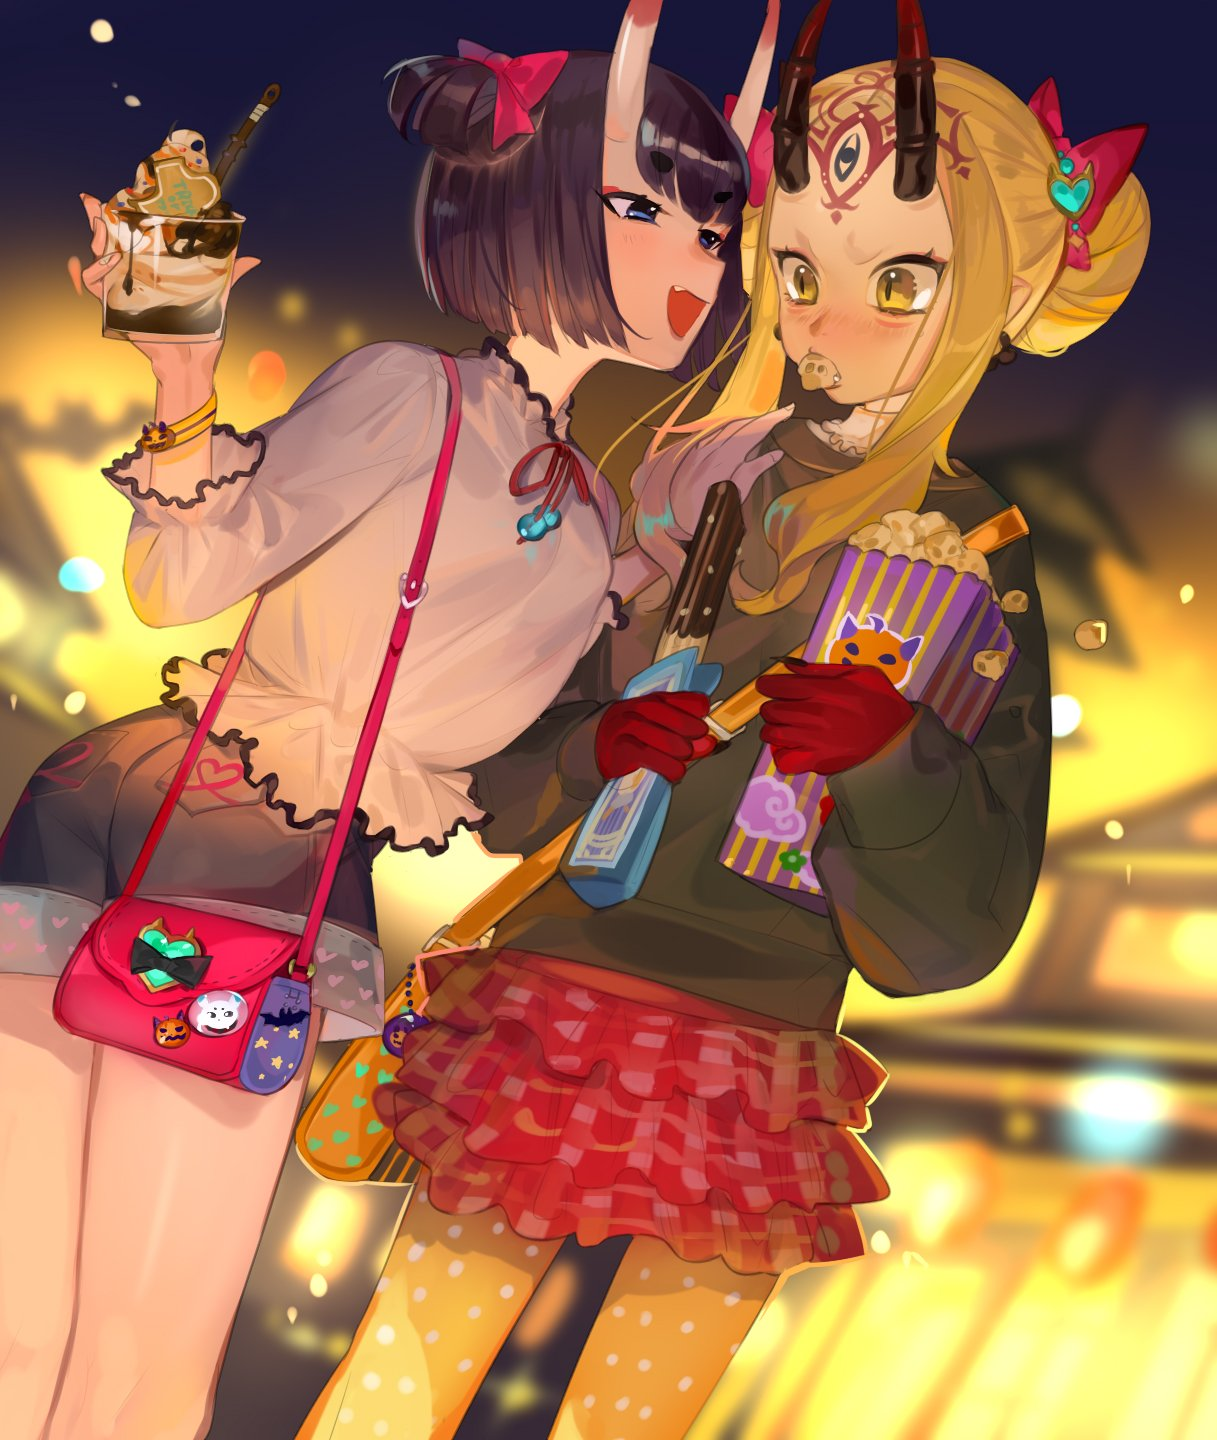 2girls :d bag bangs black_hair black_shirt black_shorts blue_eyes blurry blurry_background blush bow breasts casual commentary cup depth_of_field dutch_angle earrings eyebrows_visible_through_hair facial_mark fang fate/grand_order fate_(series) food food_in_mouth forehead_mark hair_bow hair_bun hair_ornament handbag heart heart_hair_ornament highres holding holding_cup holding_food horns ibaraki_douji_(fate/grand_order) ice_cream jewelry layered_skirt long_sleeves mouth_hold multiple_girls nose_blush one_side_up oni oni_horns open_mouth orange_legwear pantyhose picube525528 pleated_skirt pointy_ears polka_dot polka_dot_legwear popcorn puffy_long_sleeves puffy_sleeves red_bow red_skirt shirt short_eyebrows short_shorts shorts shoulder_bag shuten_douji_(fate/grand_order) skirt sleeves_past_wrists small_breasts smile thick_eyebrows white_shirt